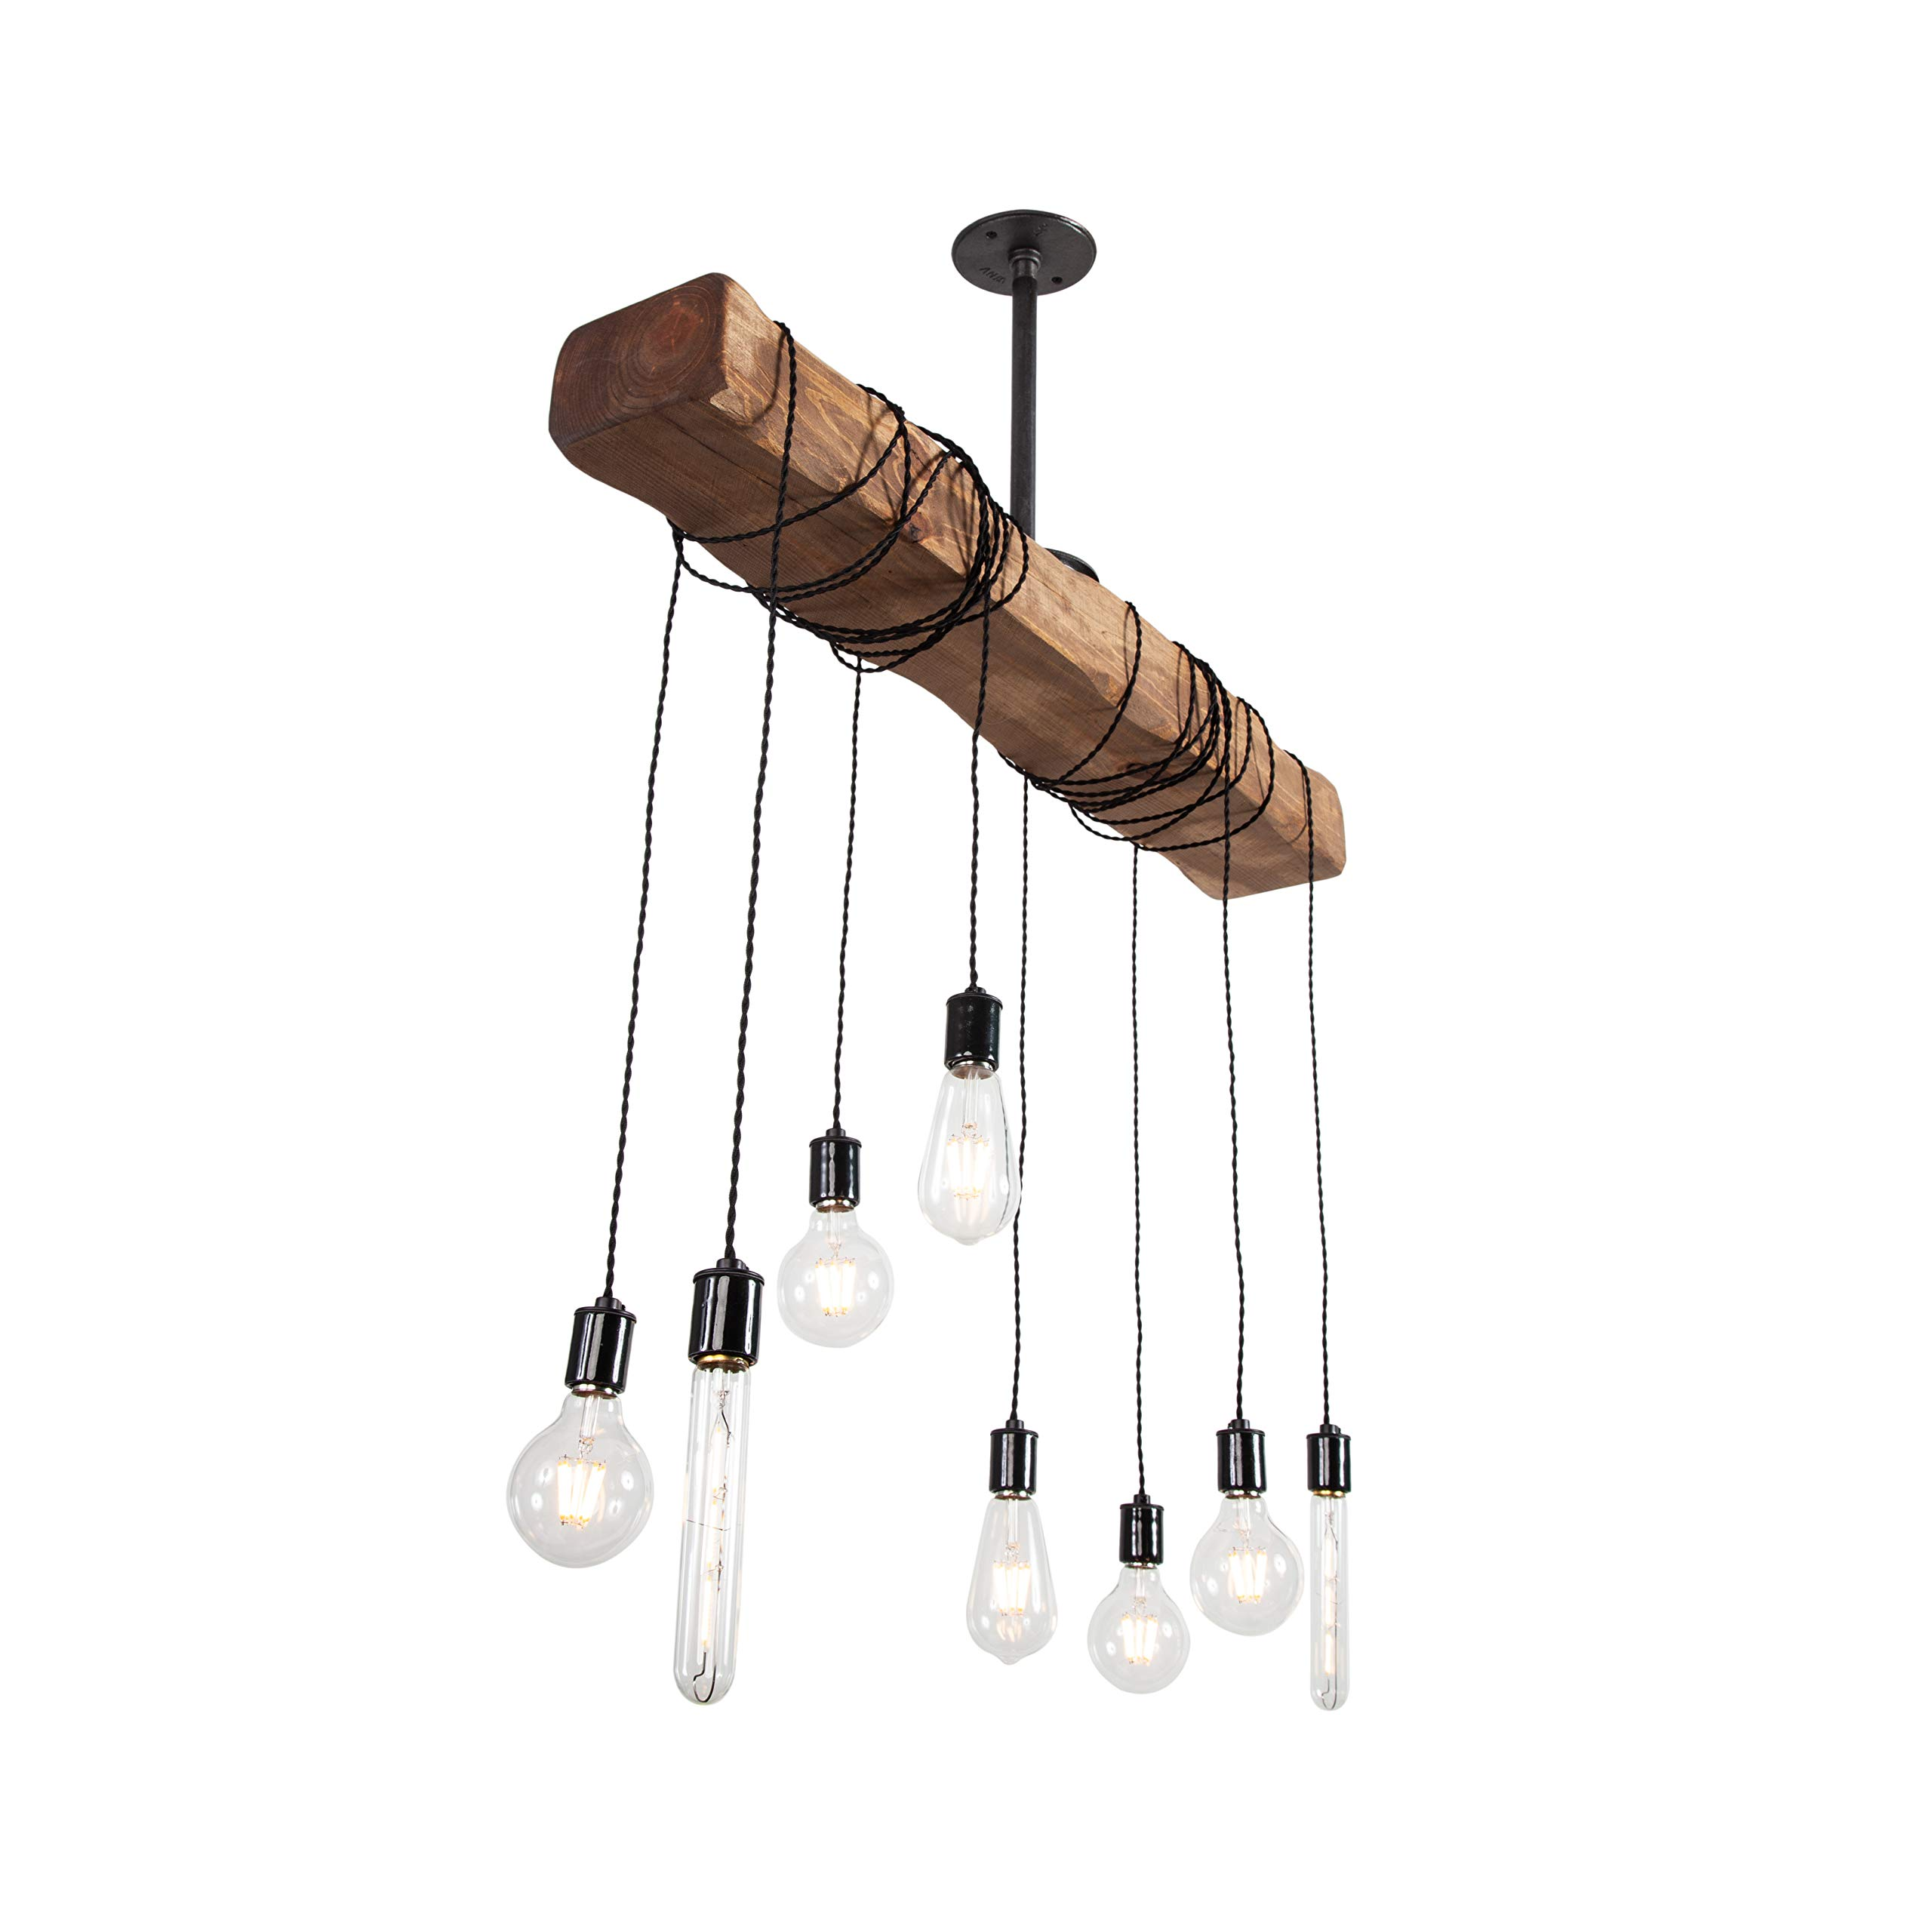 West Ninth Vintage Pendant Wood Beam Chandelier | Indoor Downlight for Farmhouse Home Decor | Kitchen Island | Bar | Dining Room | Early American Stain